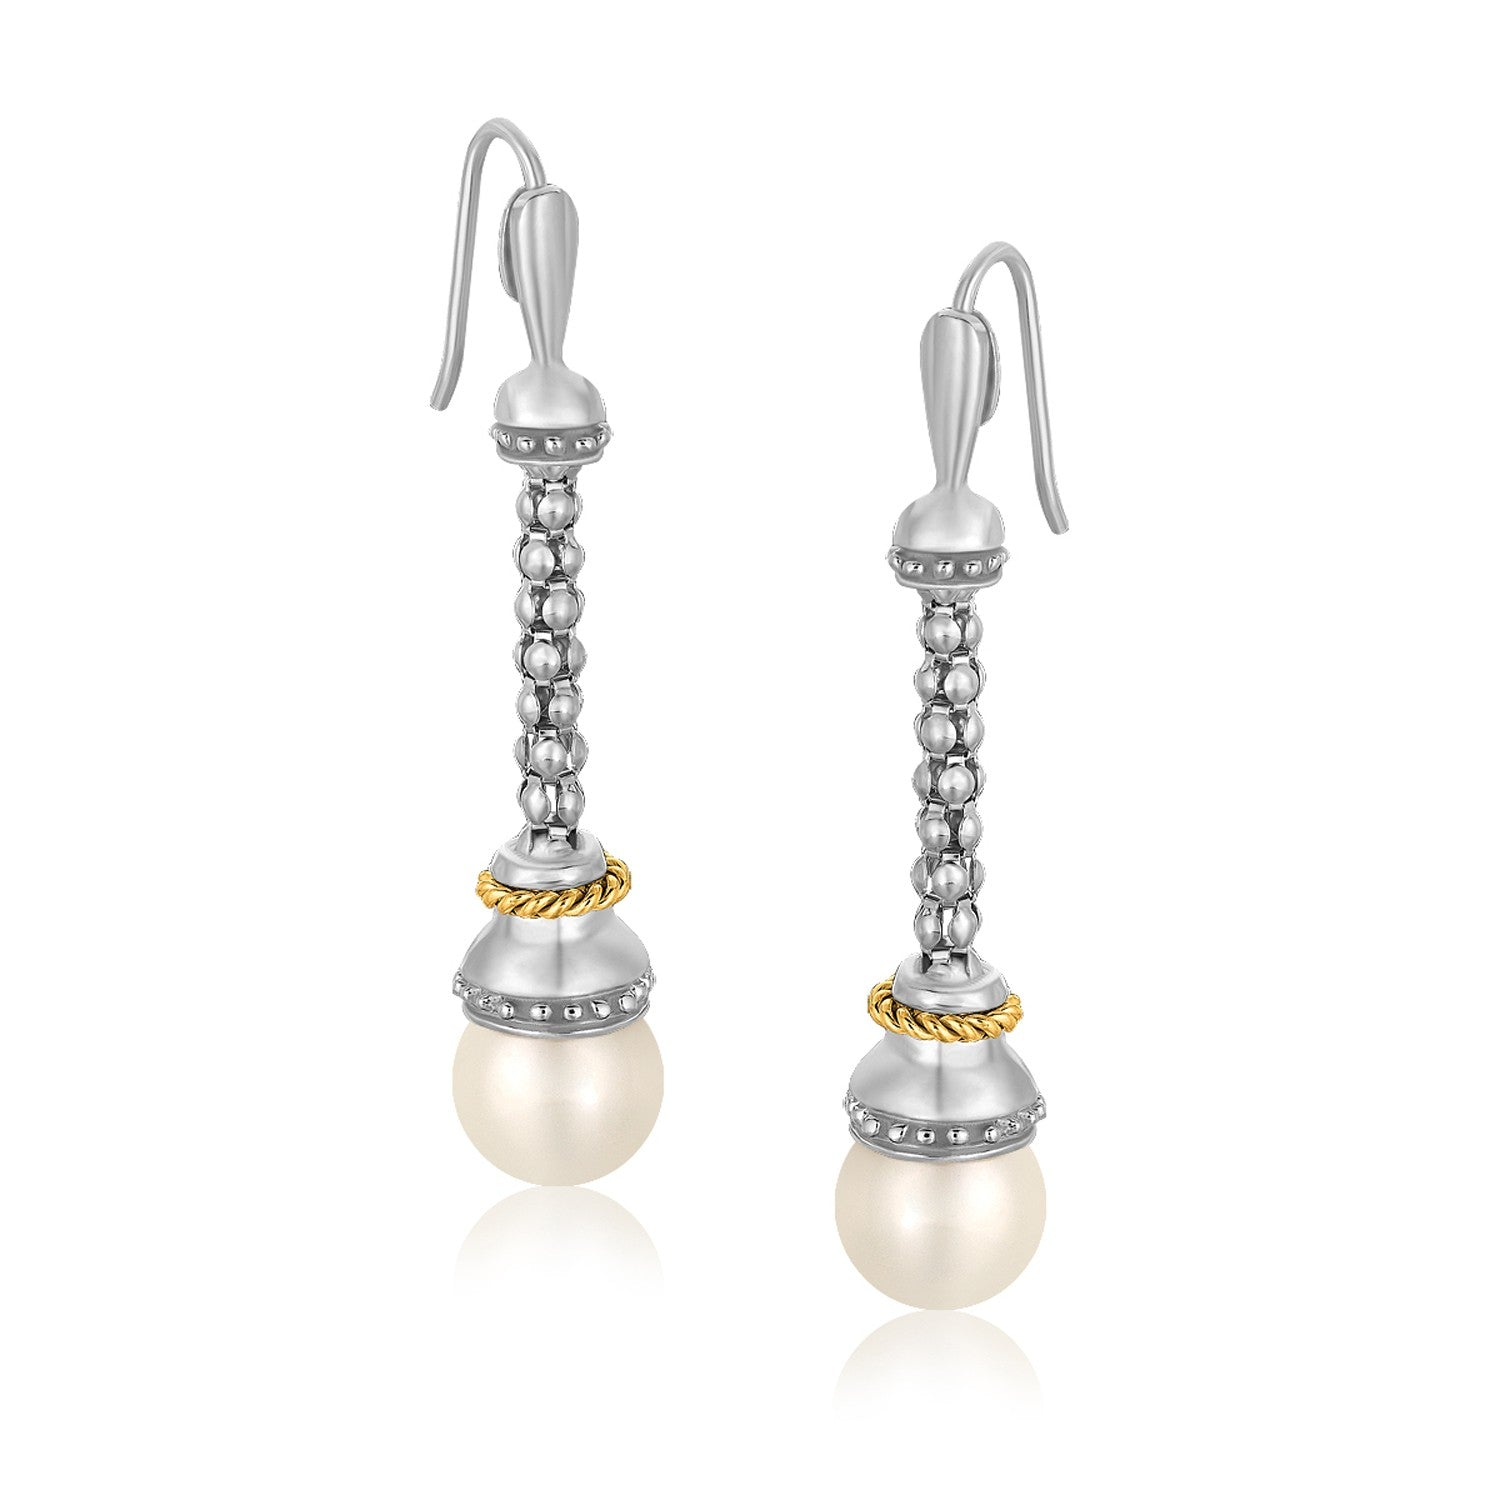 18k Yellow Gold and Sterling Silver Dangling Earrings with Pearl Ends